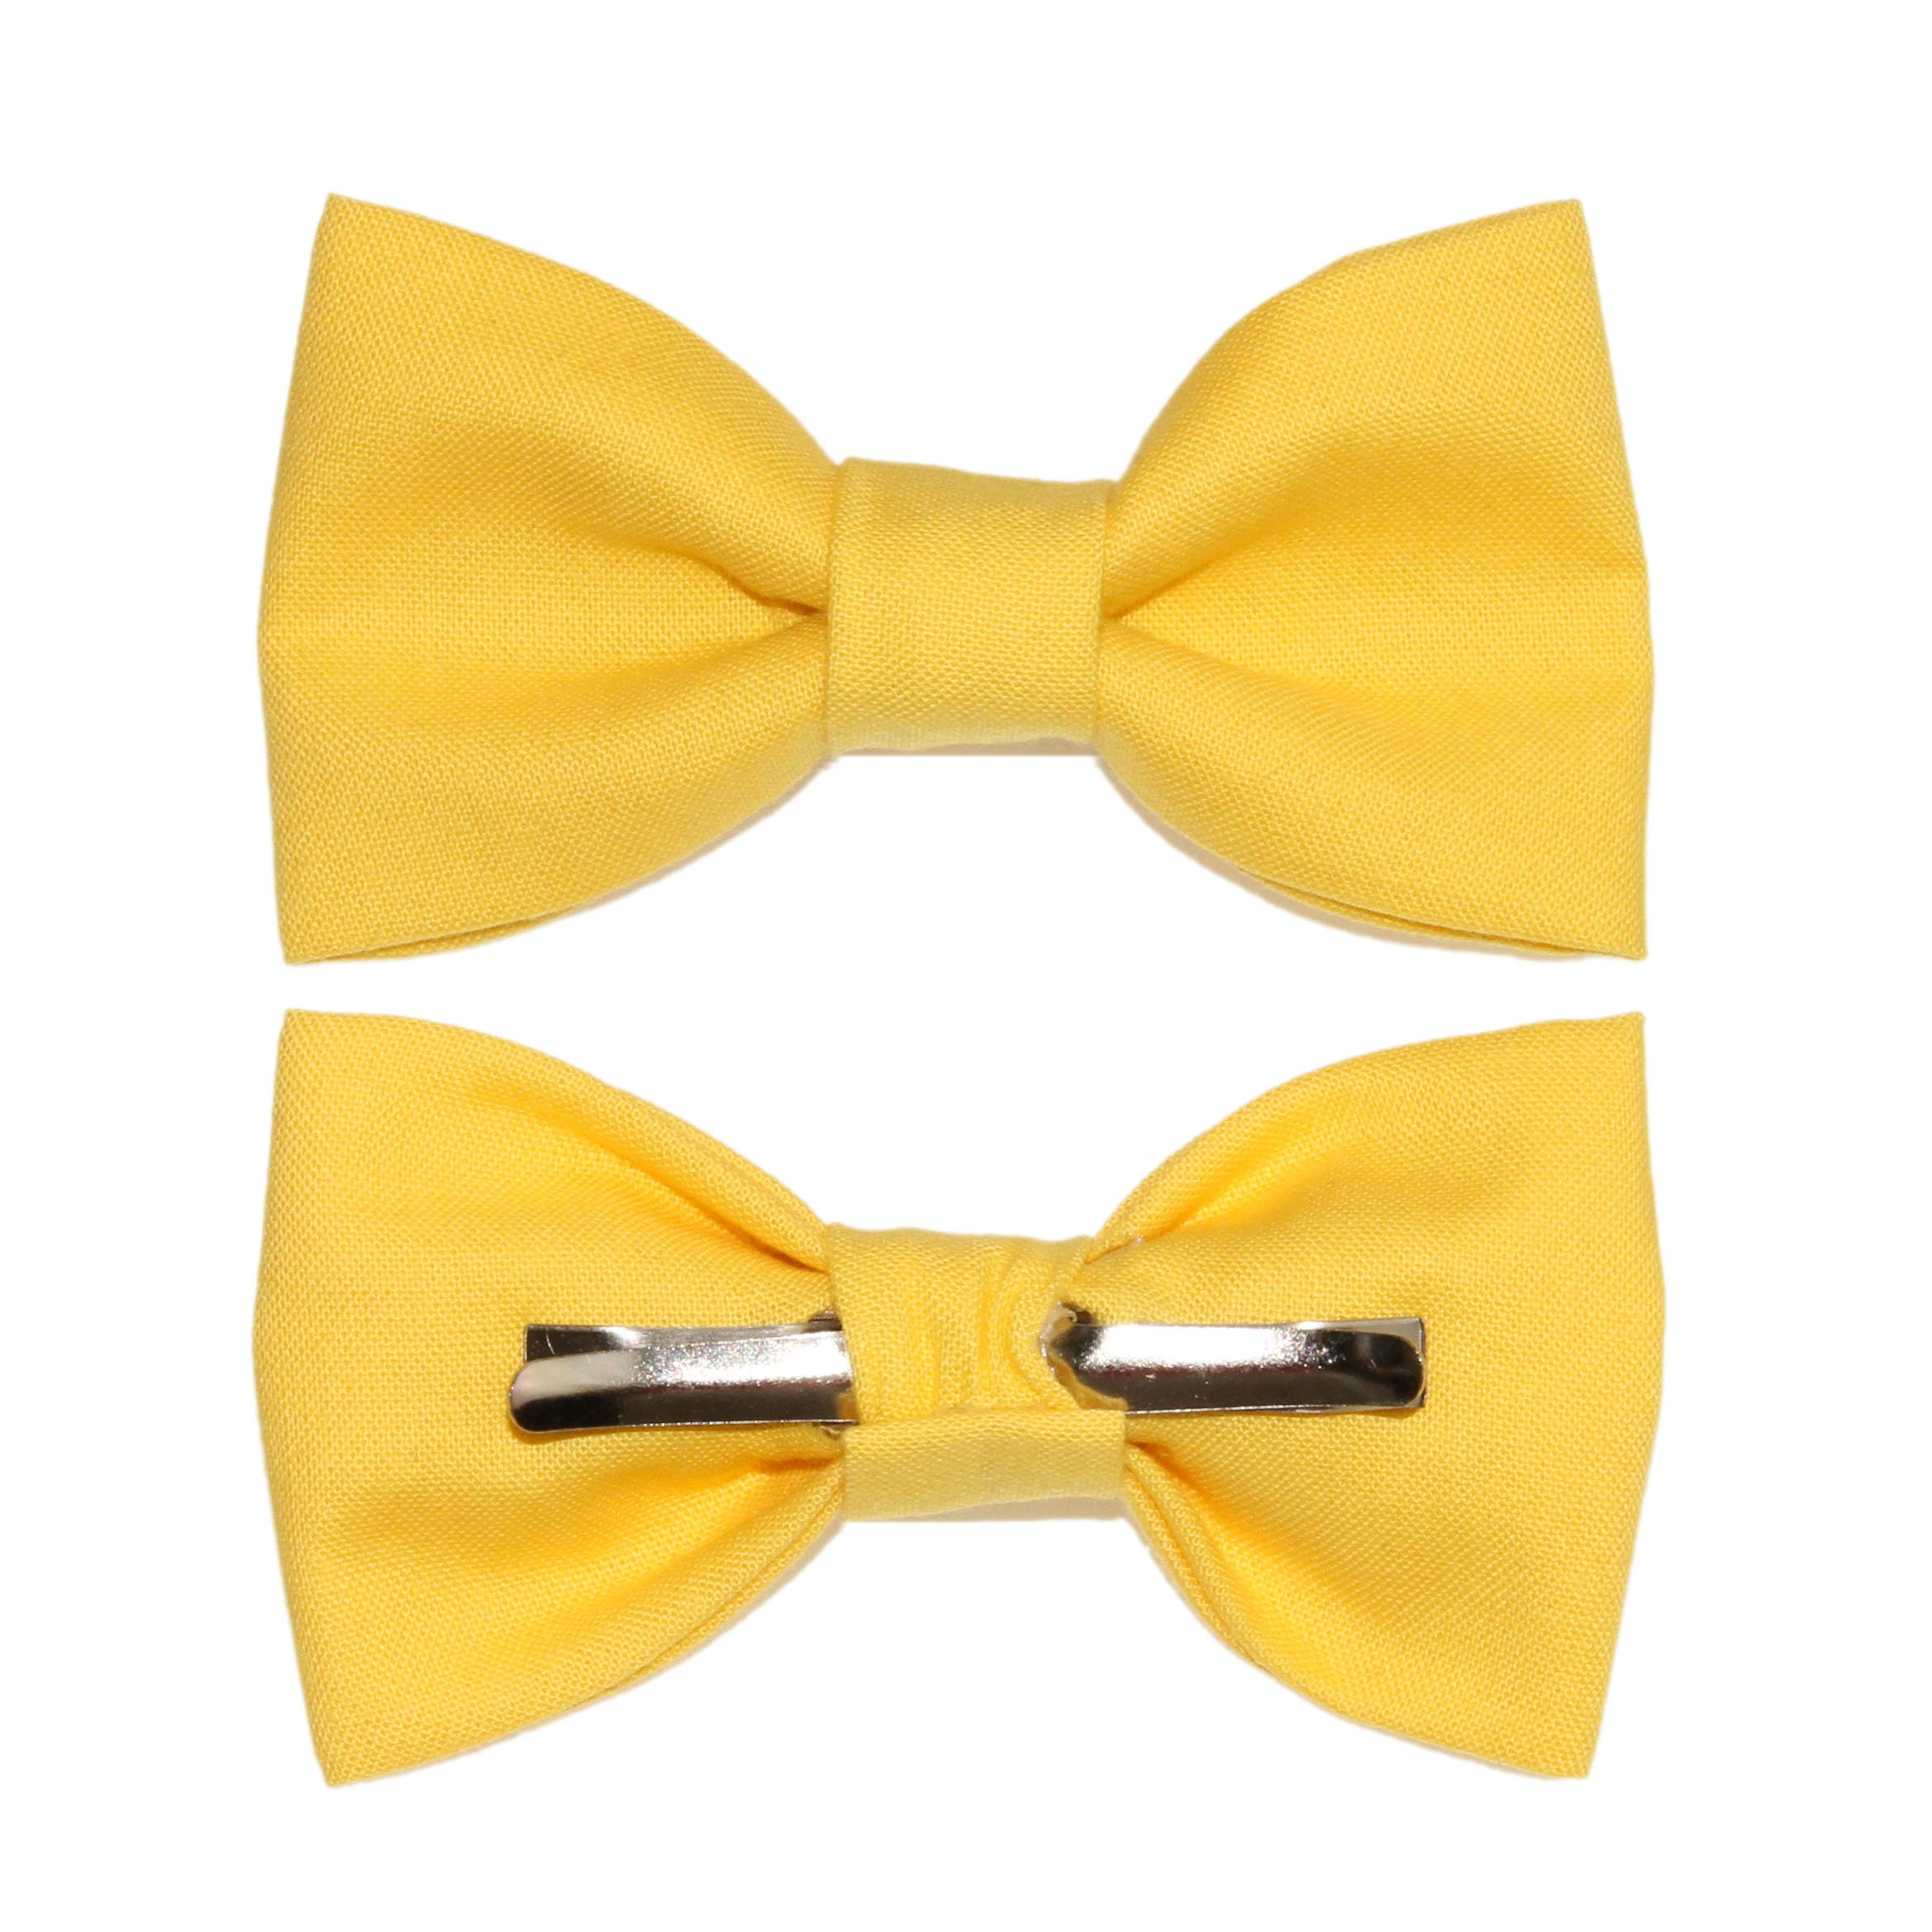 Toddler Boy 4T 5T Canary Yellow Clip On Cotton Bow Tie - Made In The USA